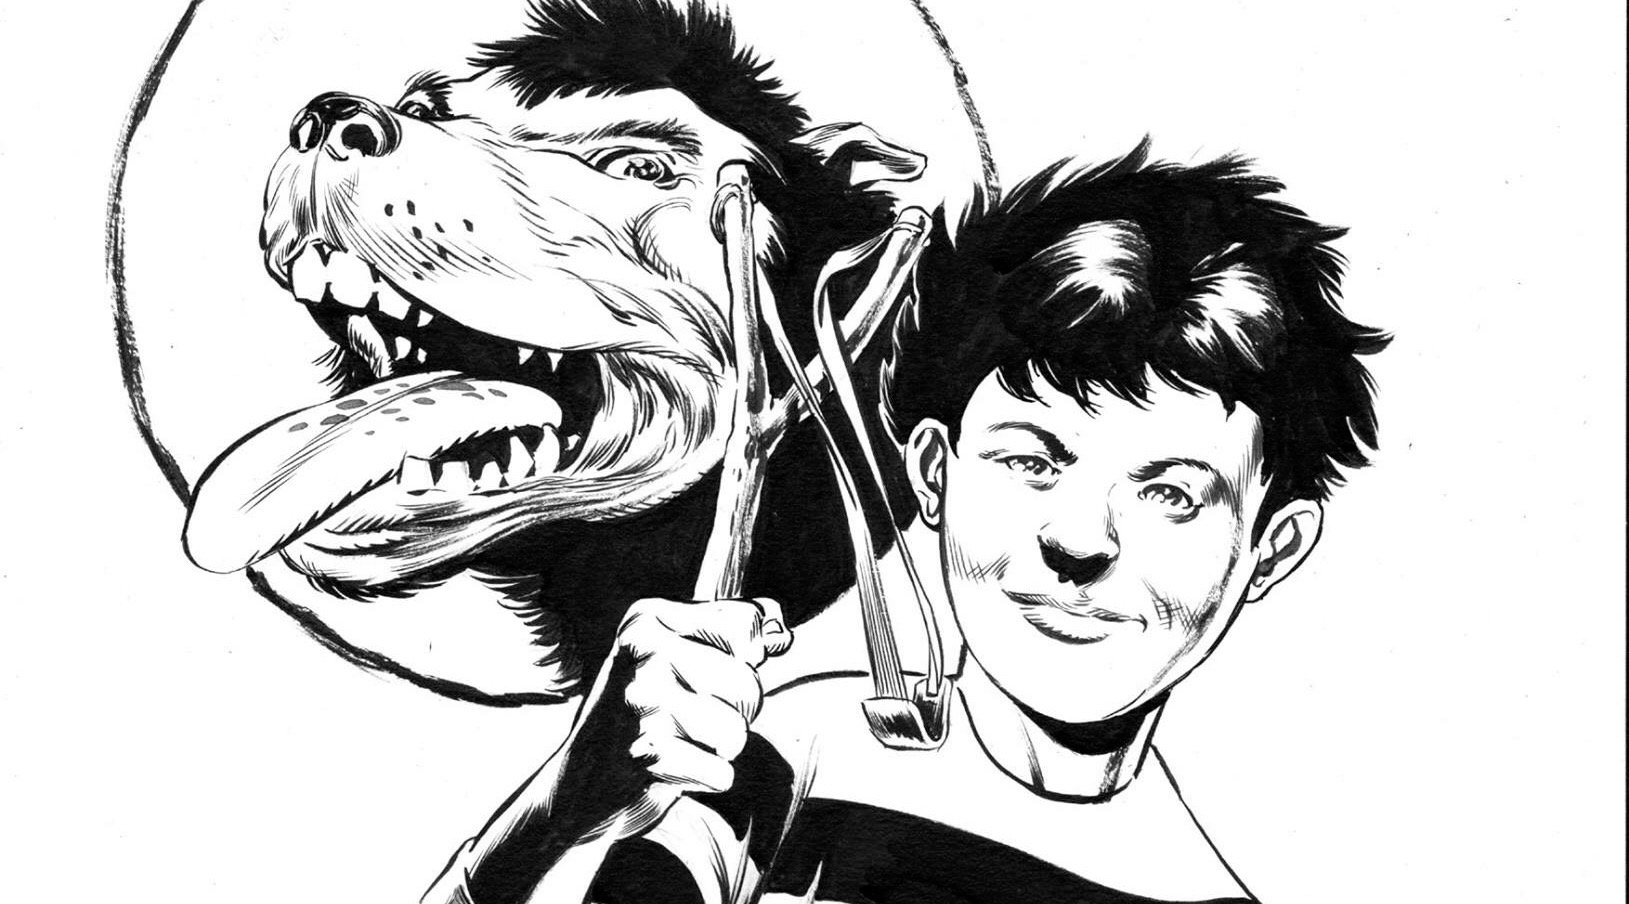 Dennis the Menace and Gnasher by Mike Perkins - SNIP